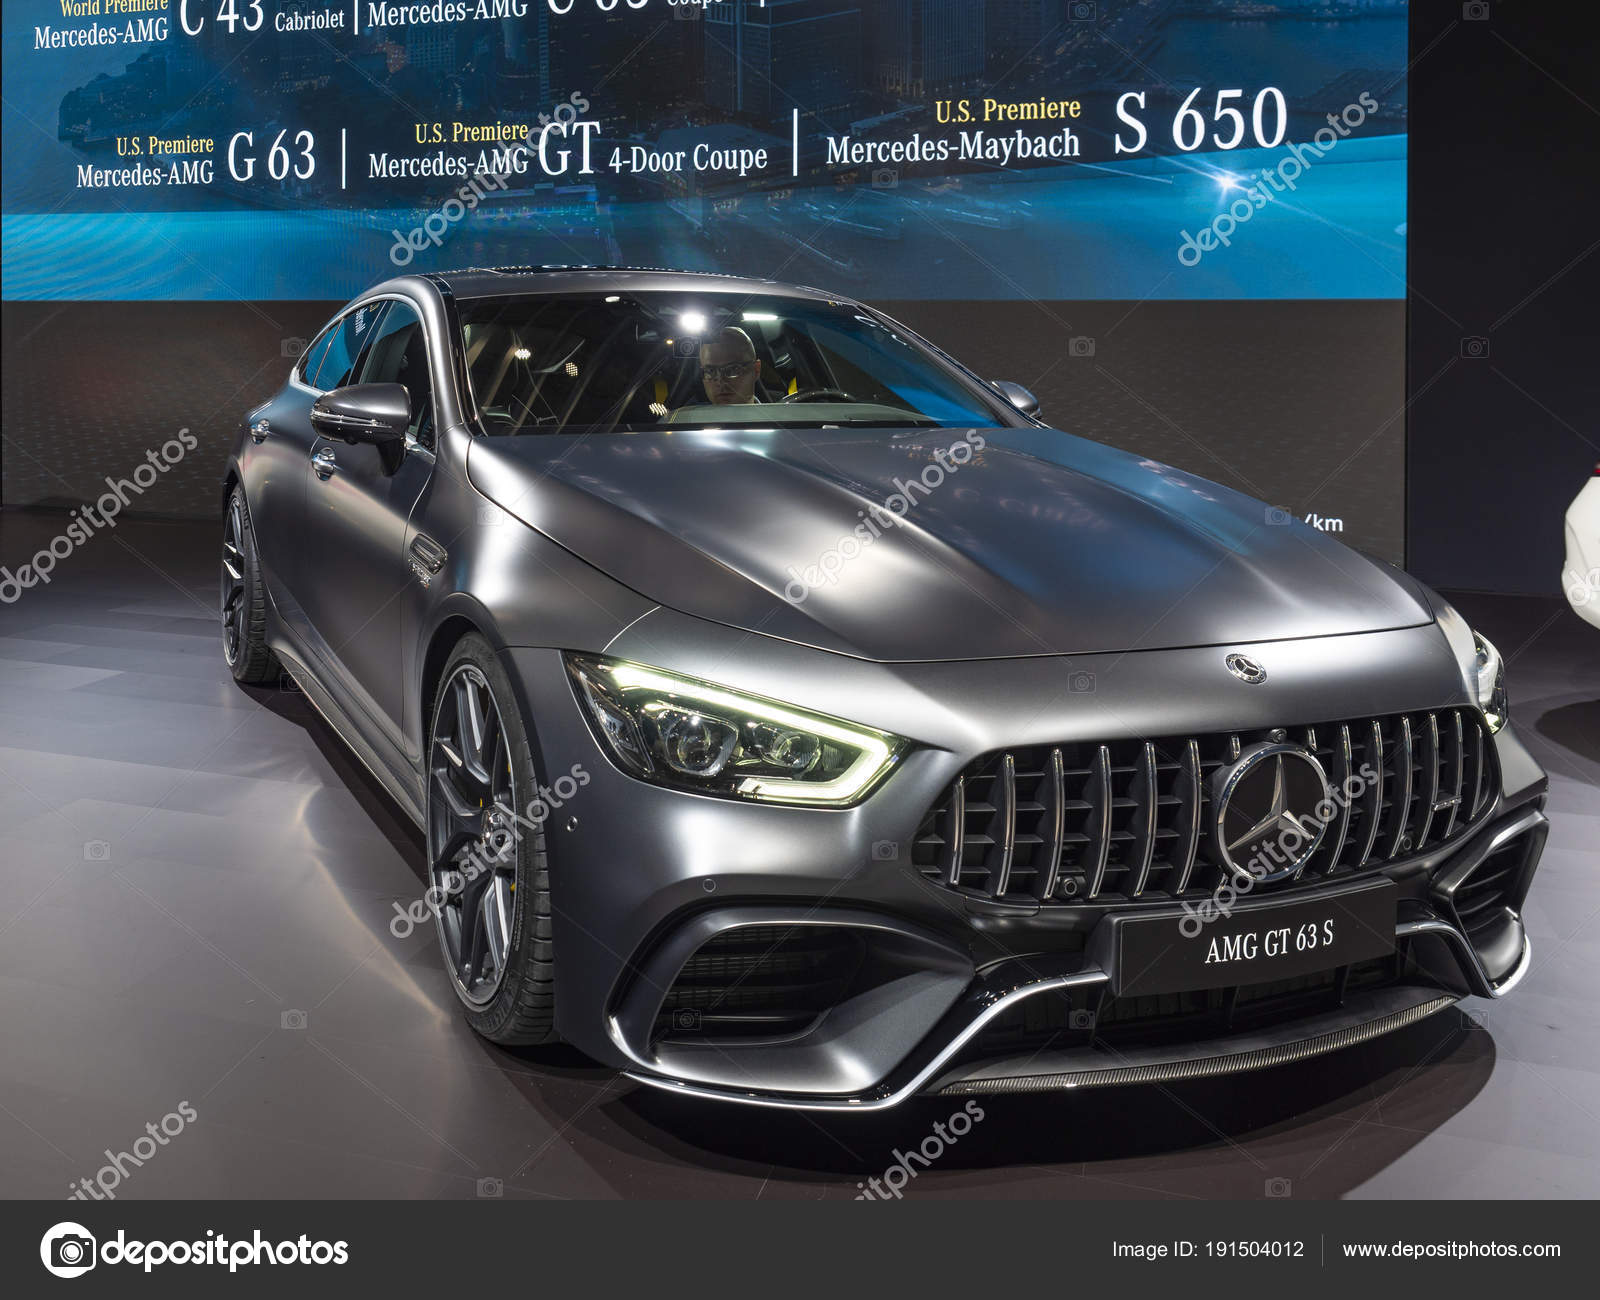 mercedes amg gt 63 s auf 2018 newyork international auto show redaktionelles stockfoto. Black Bedroom Furniture Sets. Home Design Ideas